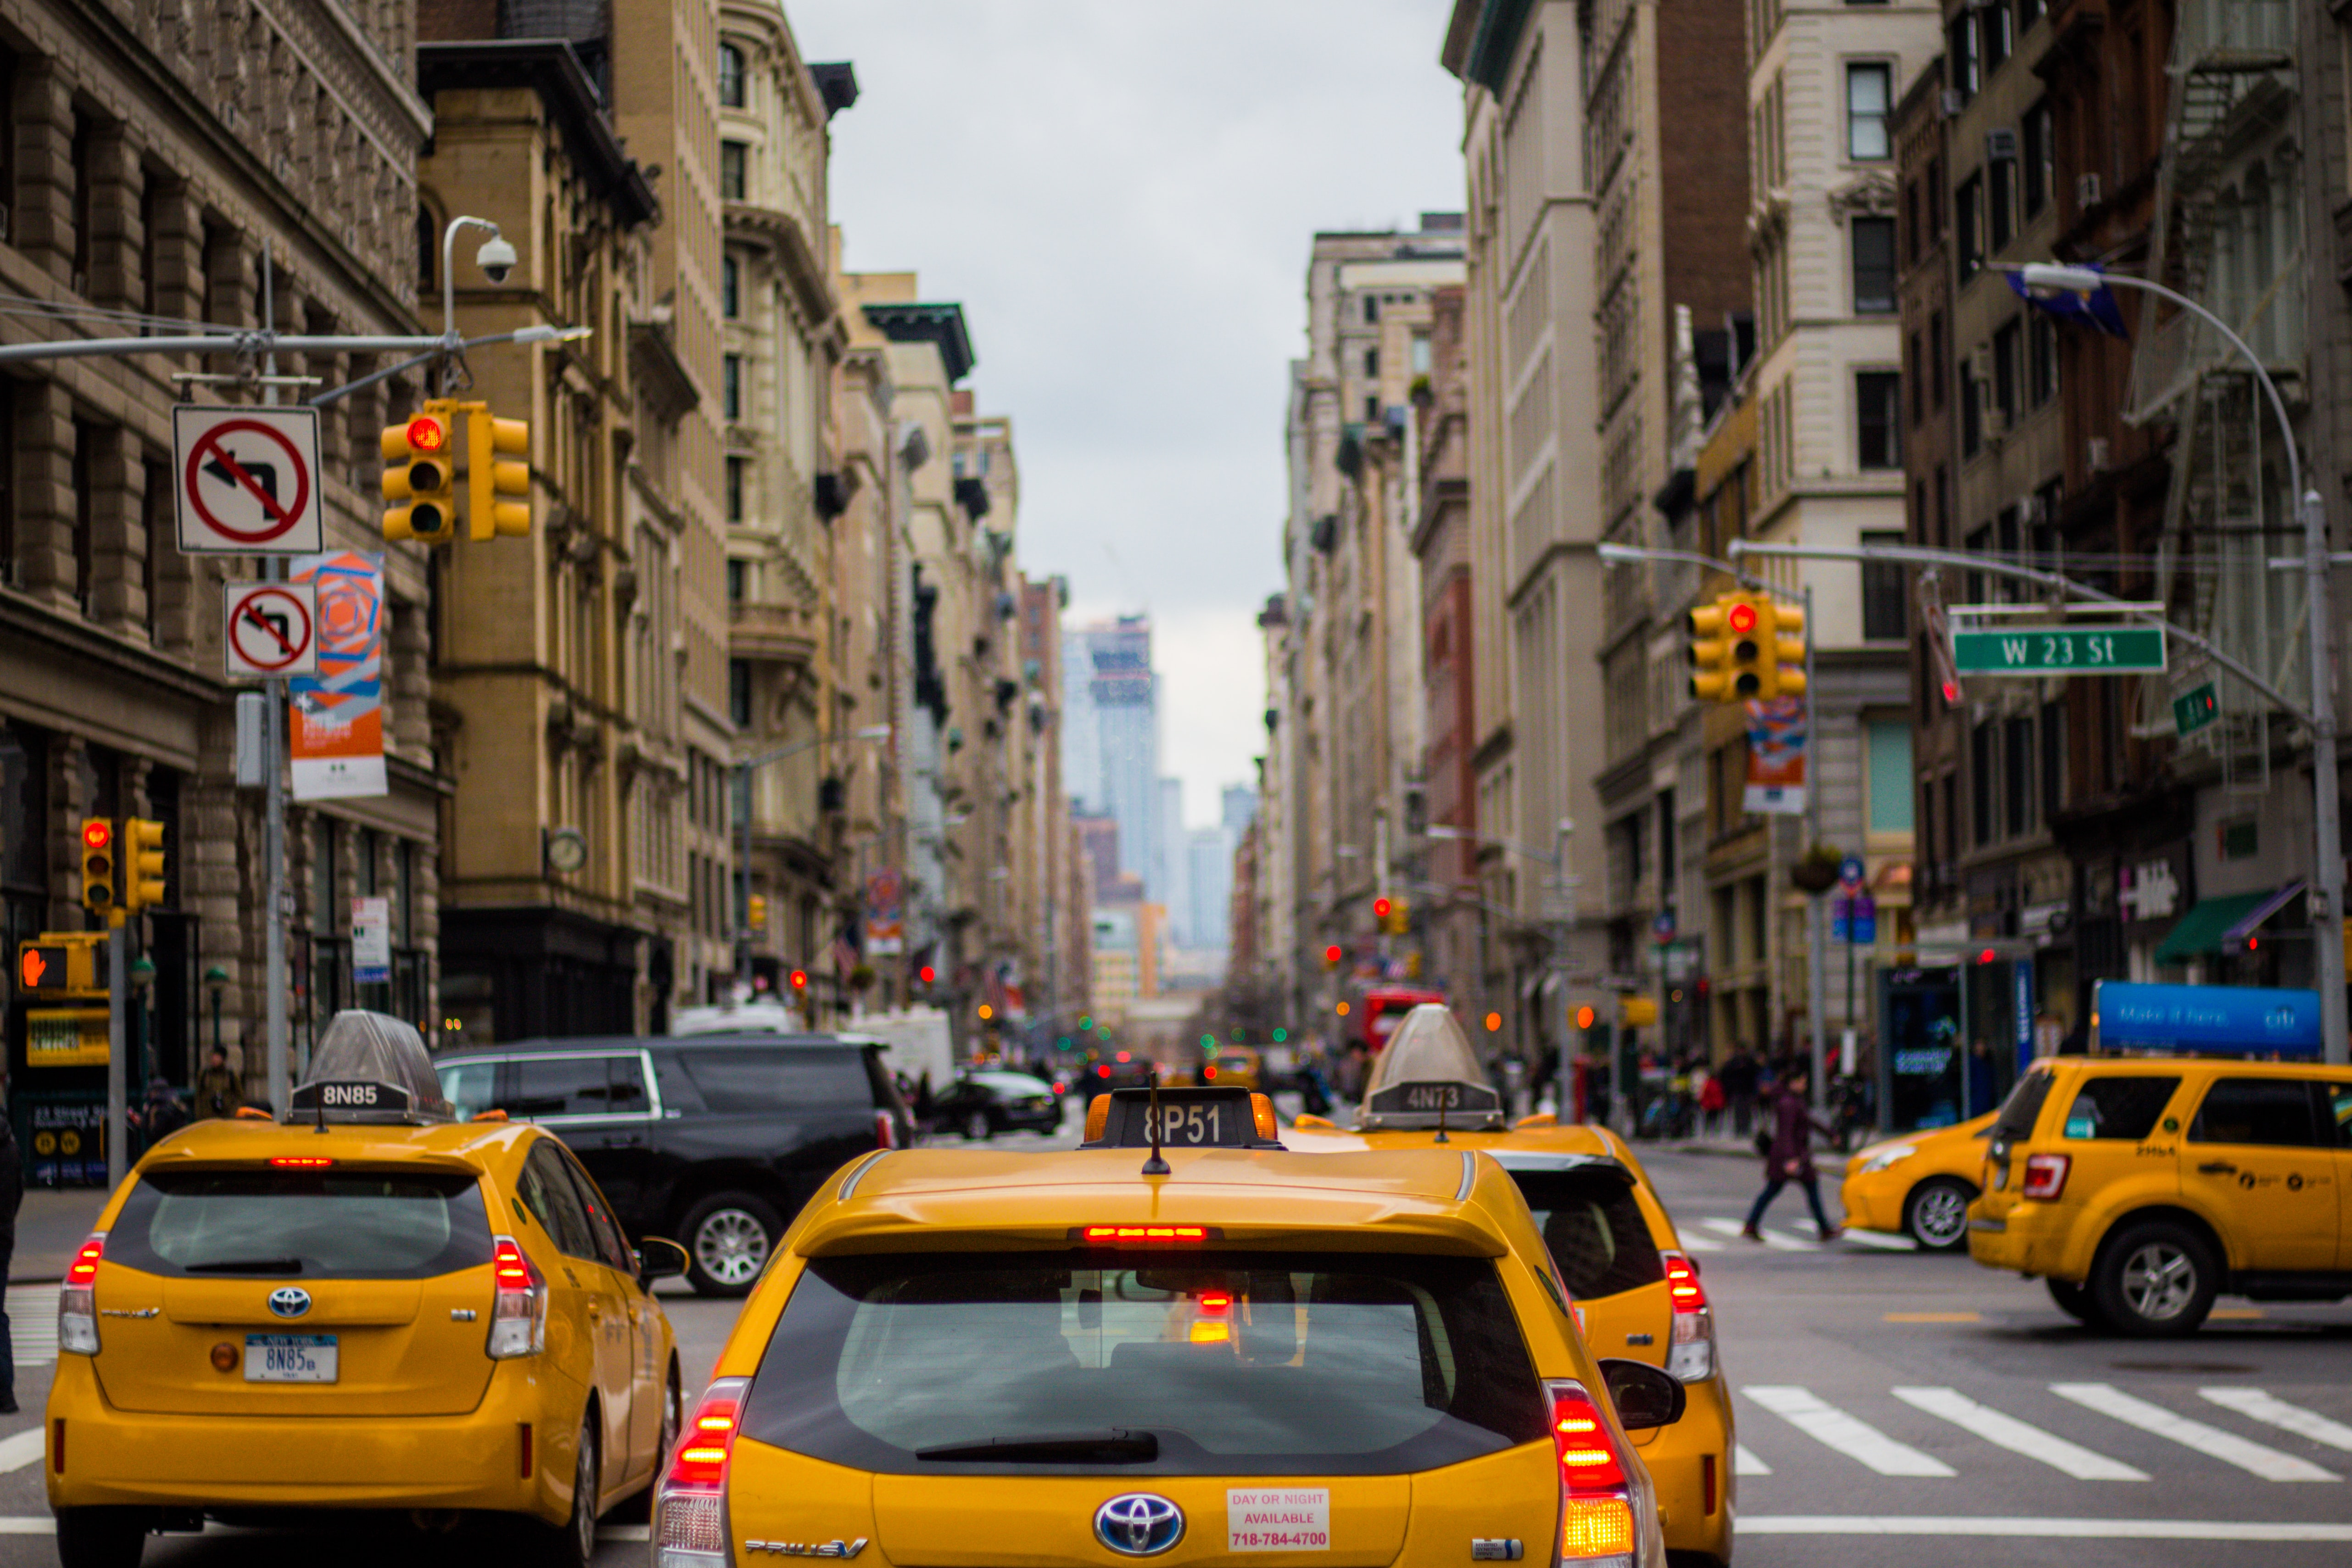 Taxi cabs stop at a red light at a busy intersection in downtown Manhattan